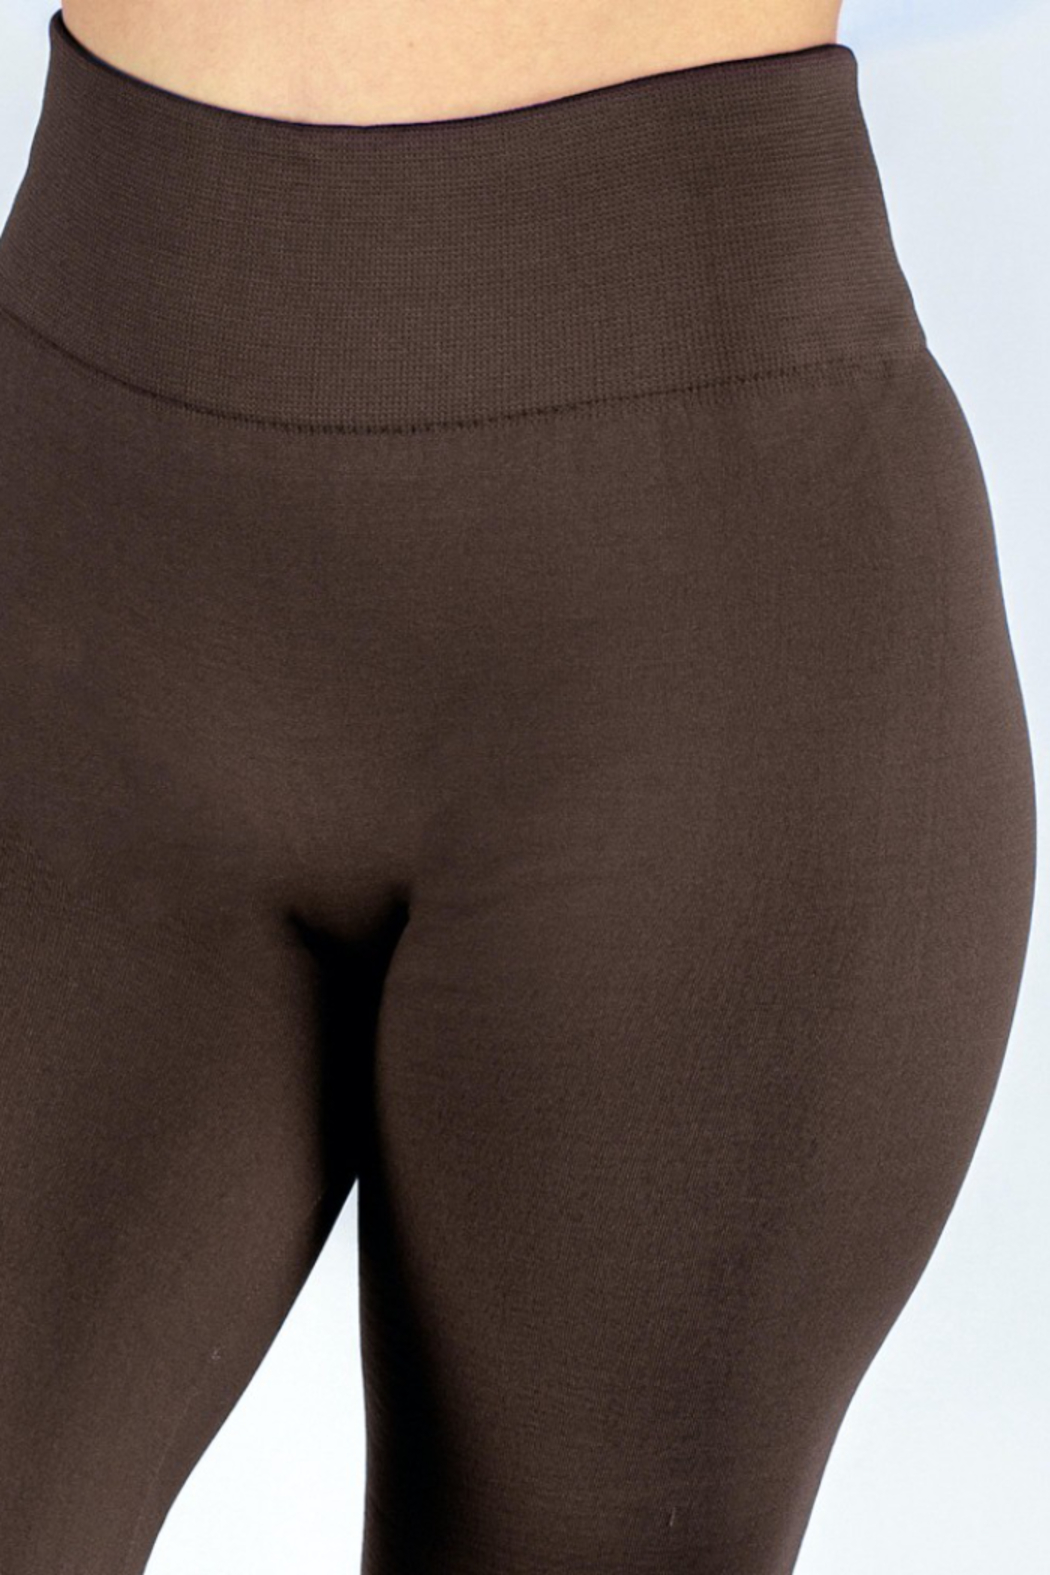 New Mix Women's Solid Color Seamless Fleece Lined Leggings - Front Full Image